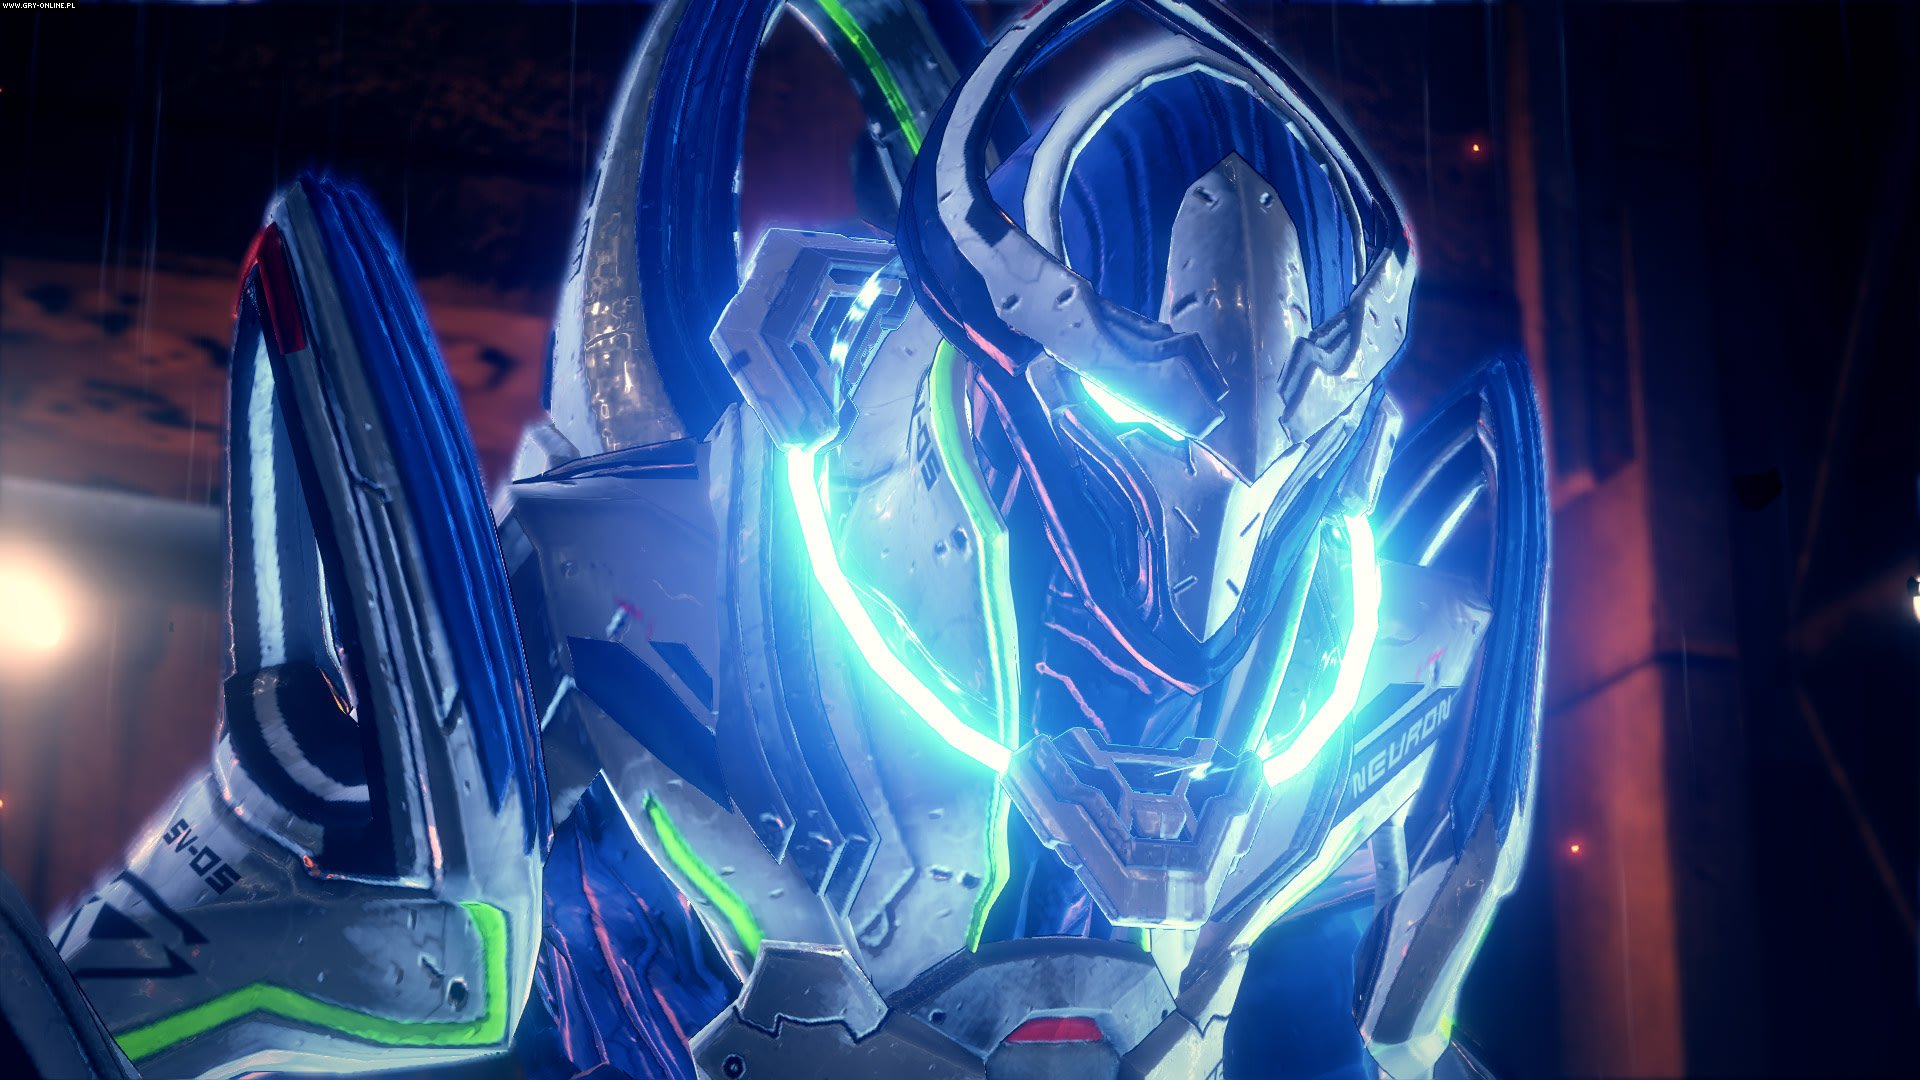 Astral Chain Switch Gry Screen 8/33, PlatinumGames, Nintendo